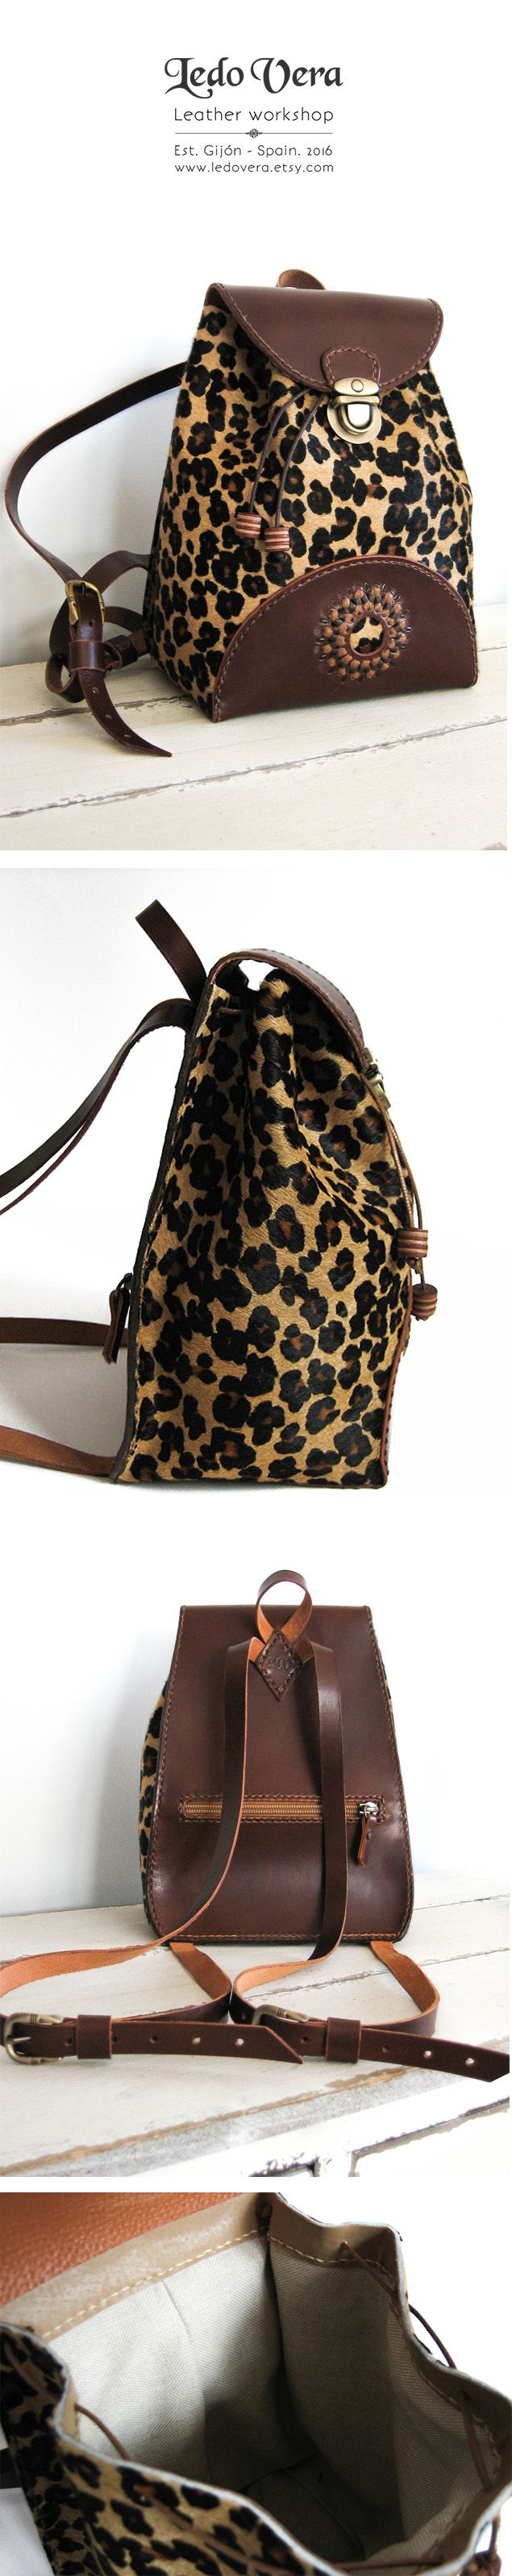 Small Backpack. Hair on cowhide with leopard print. Stylish leather backpack